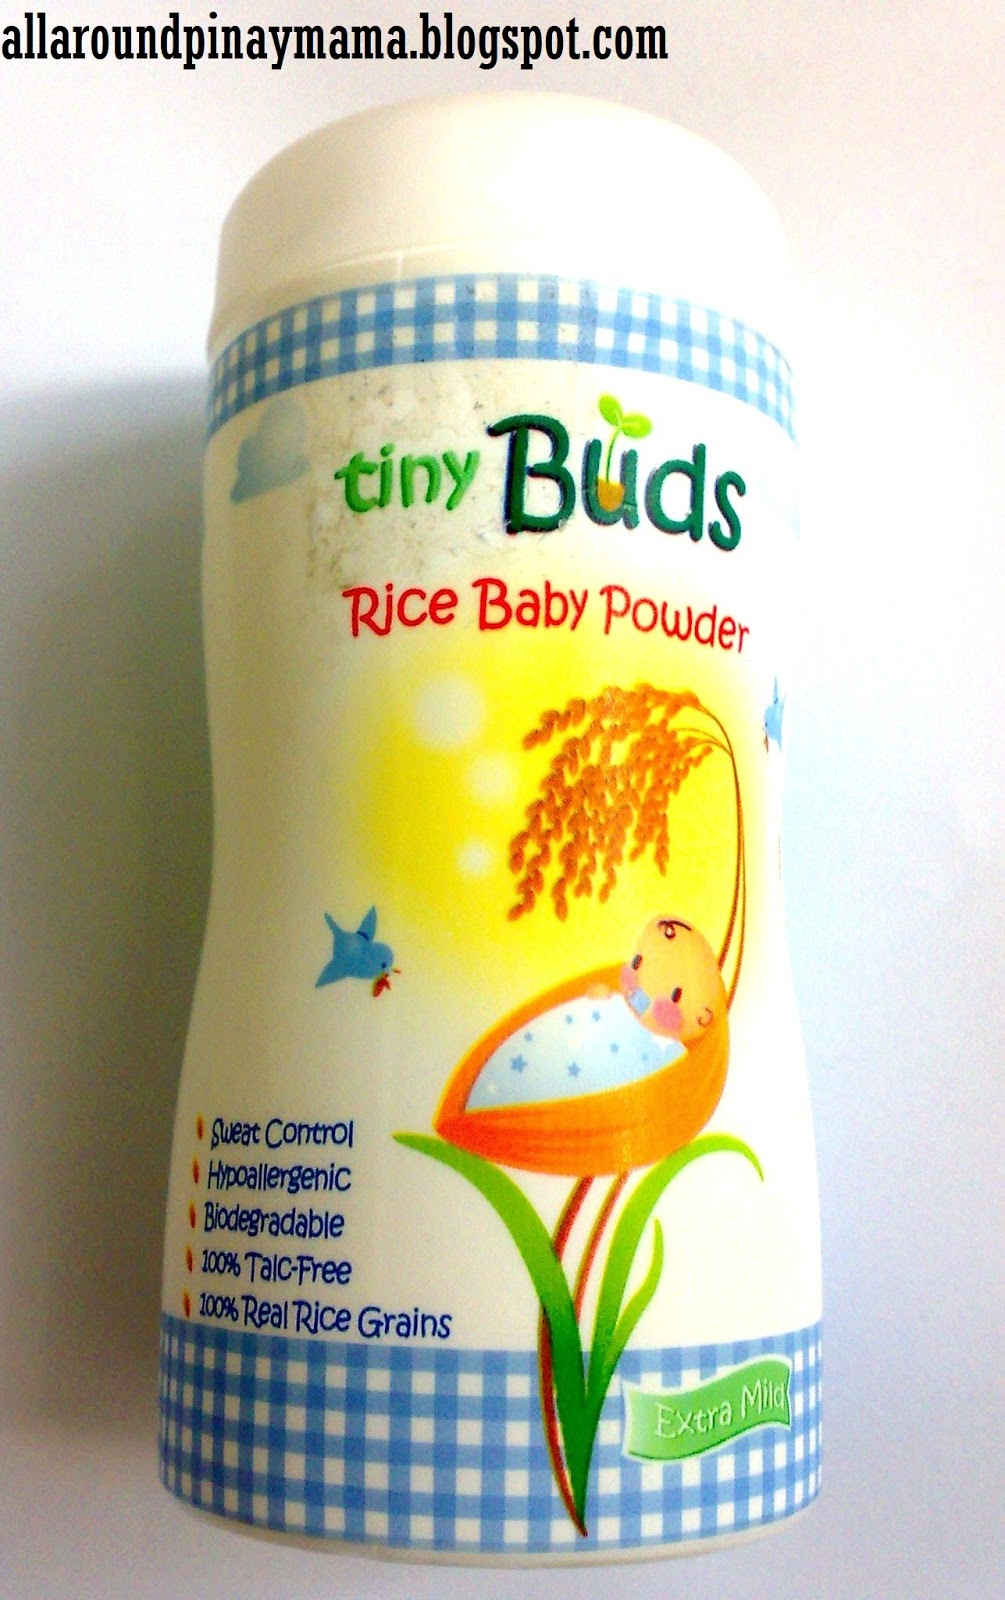 mosquito repellent lotion from atis Find and save ideas about mosquito spray on pinterest | see more ideas about natural mosquito spray, homemade mosquito repellant and mosquito spray for yard.